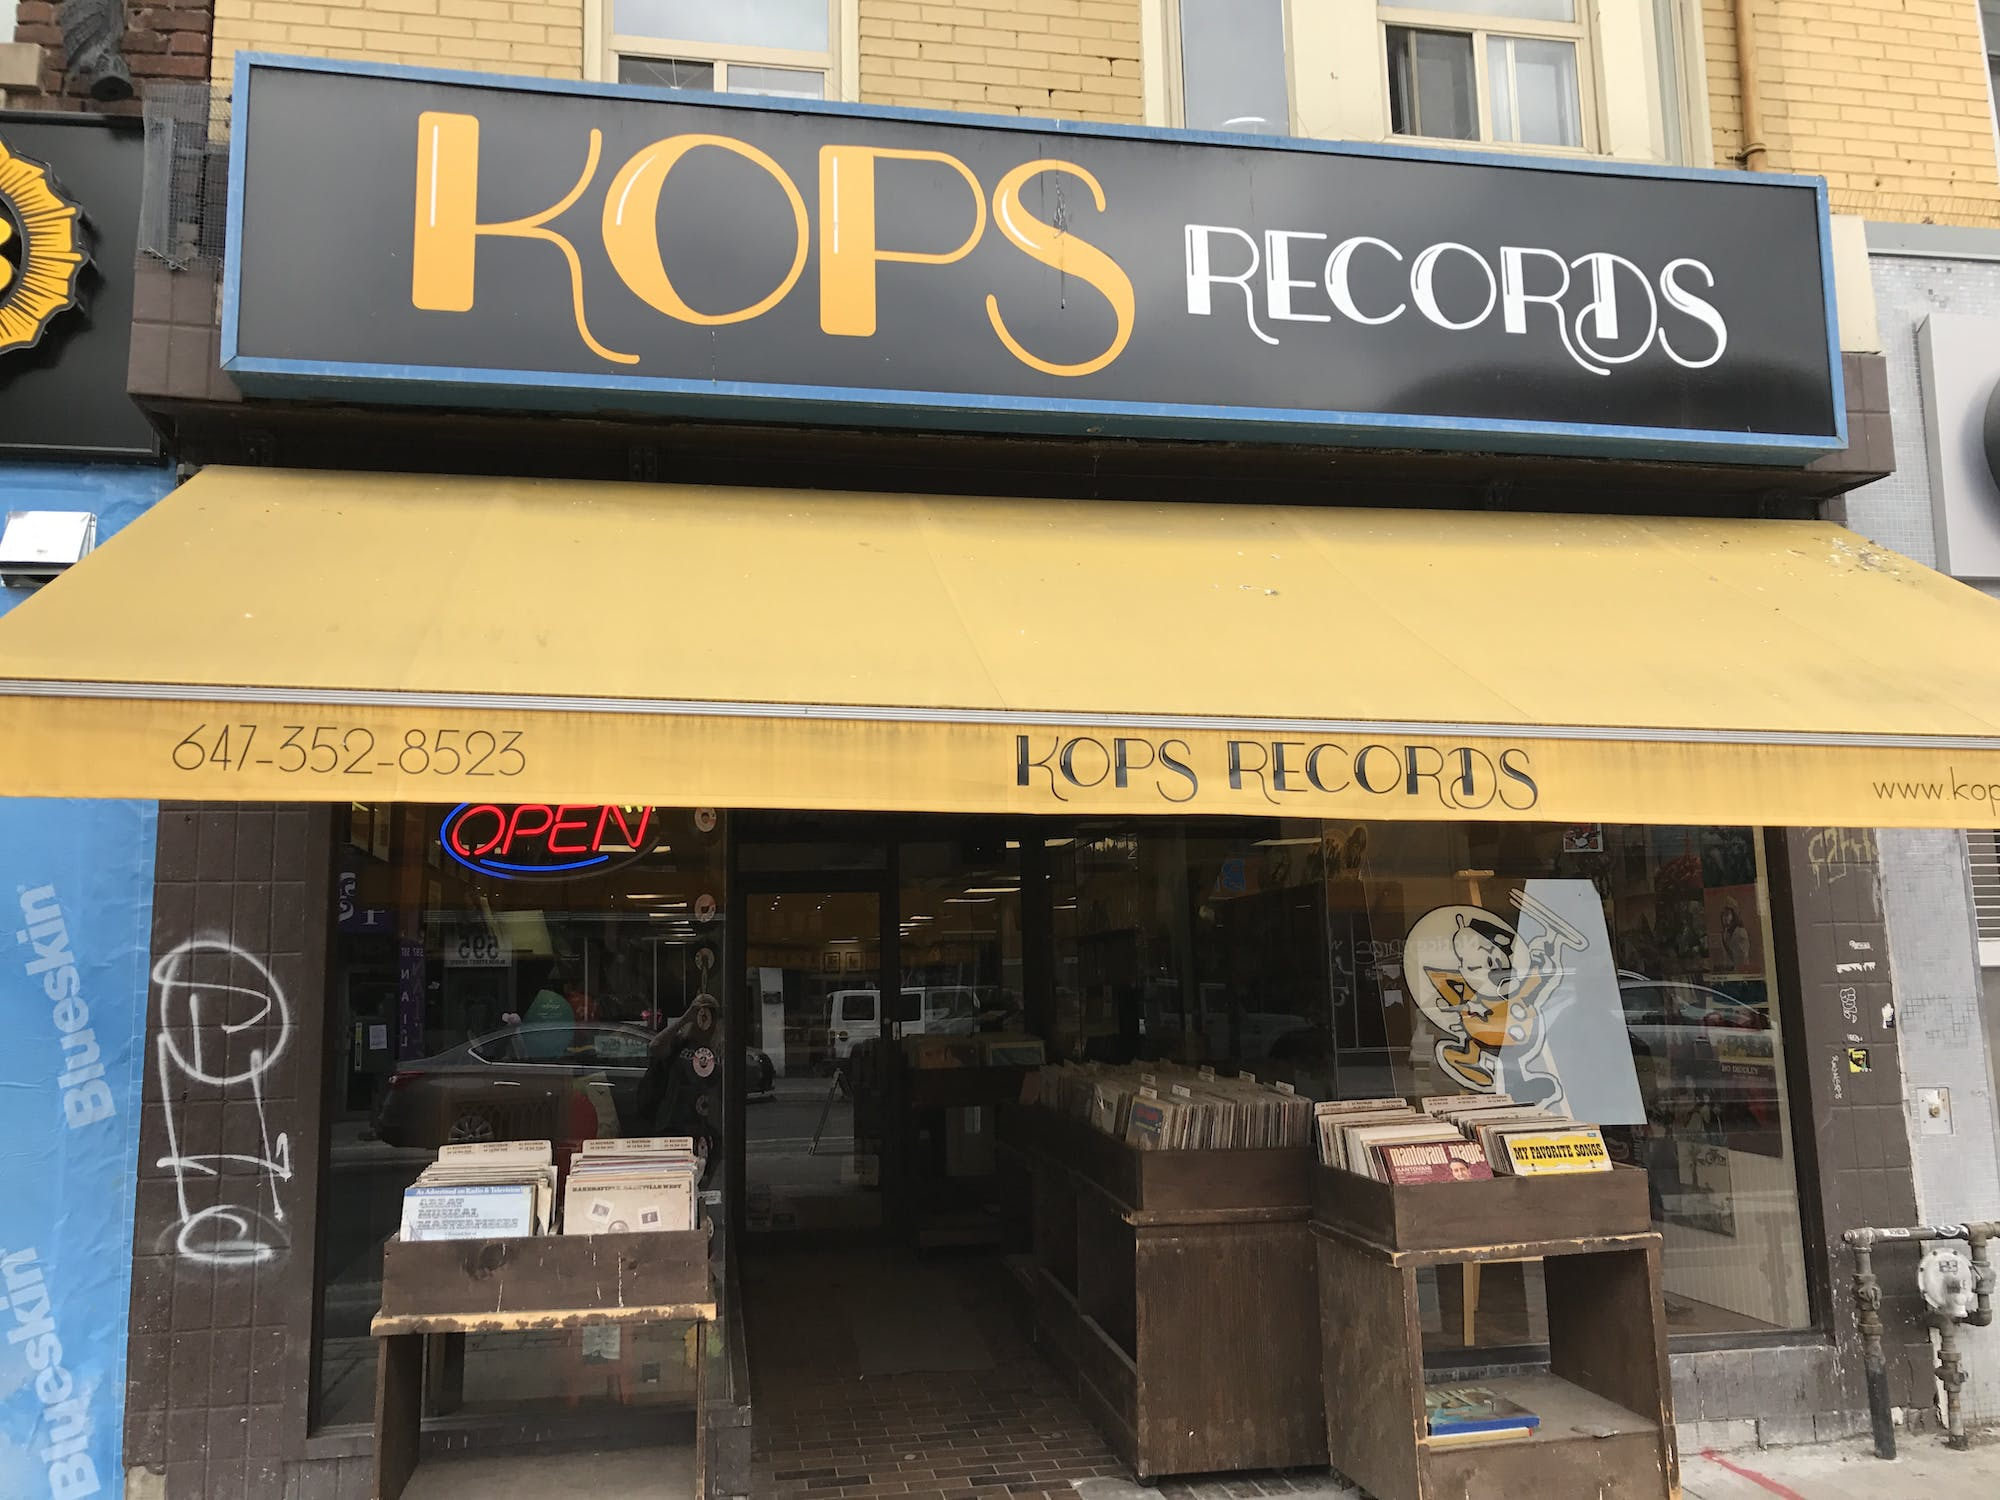 Kops Records (Bloor) - Record Store Image